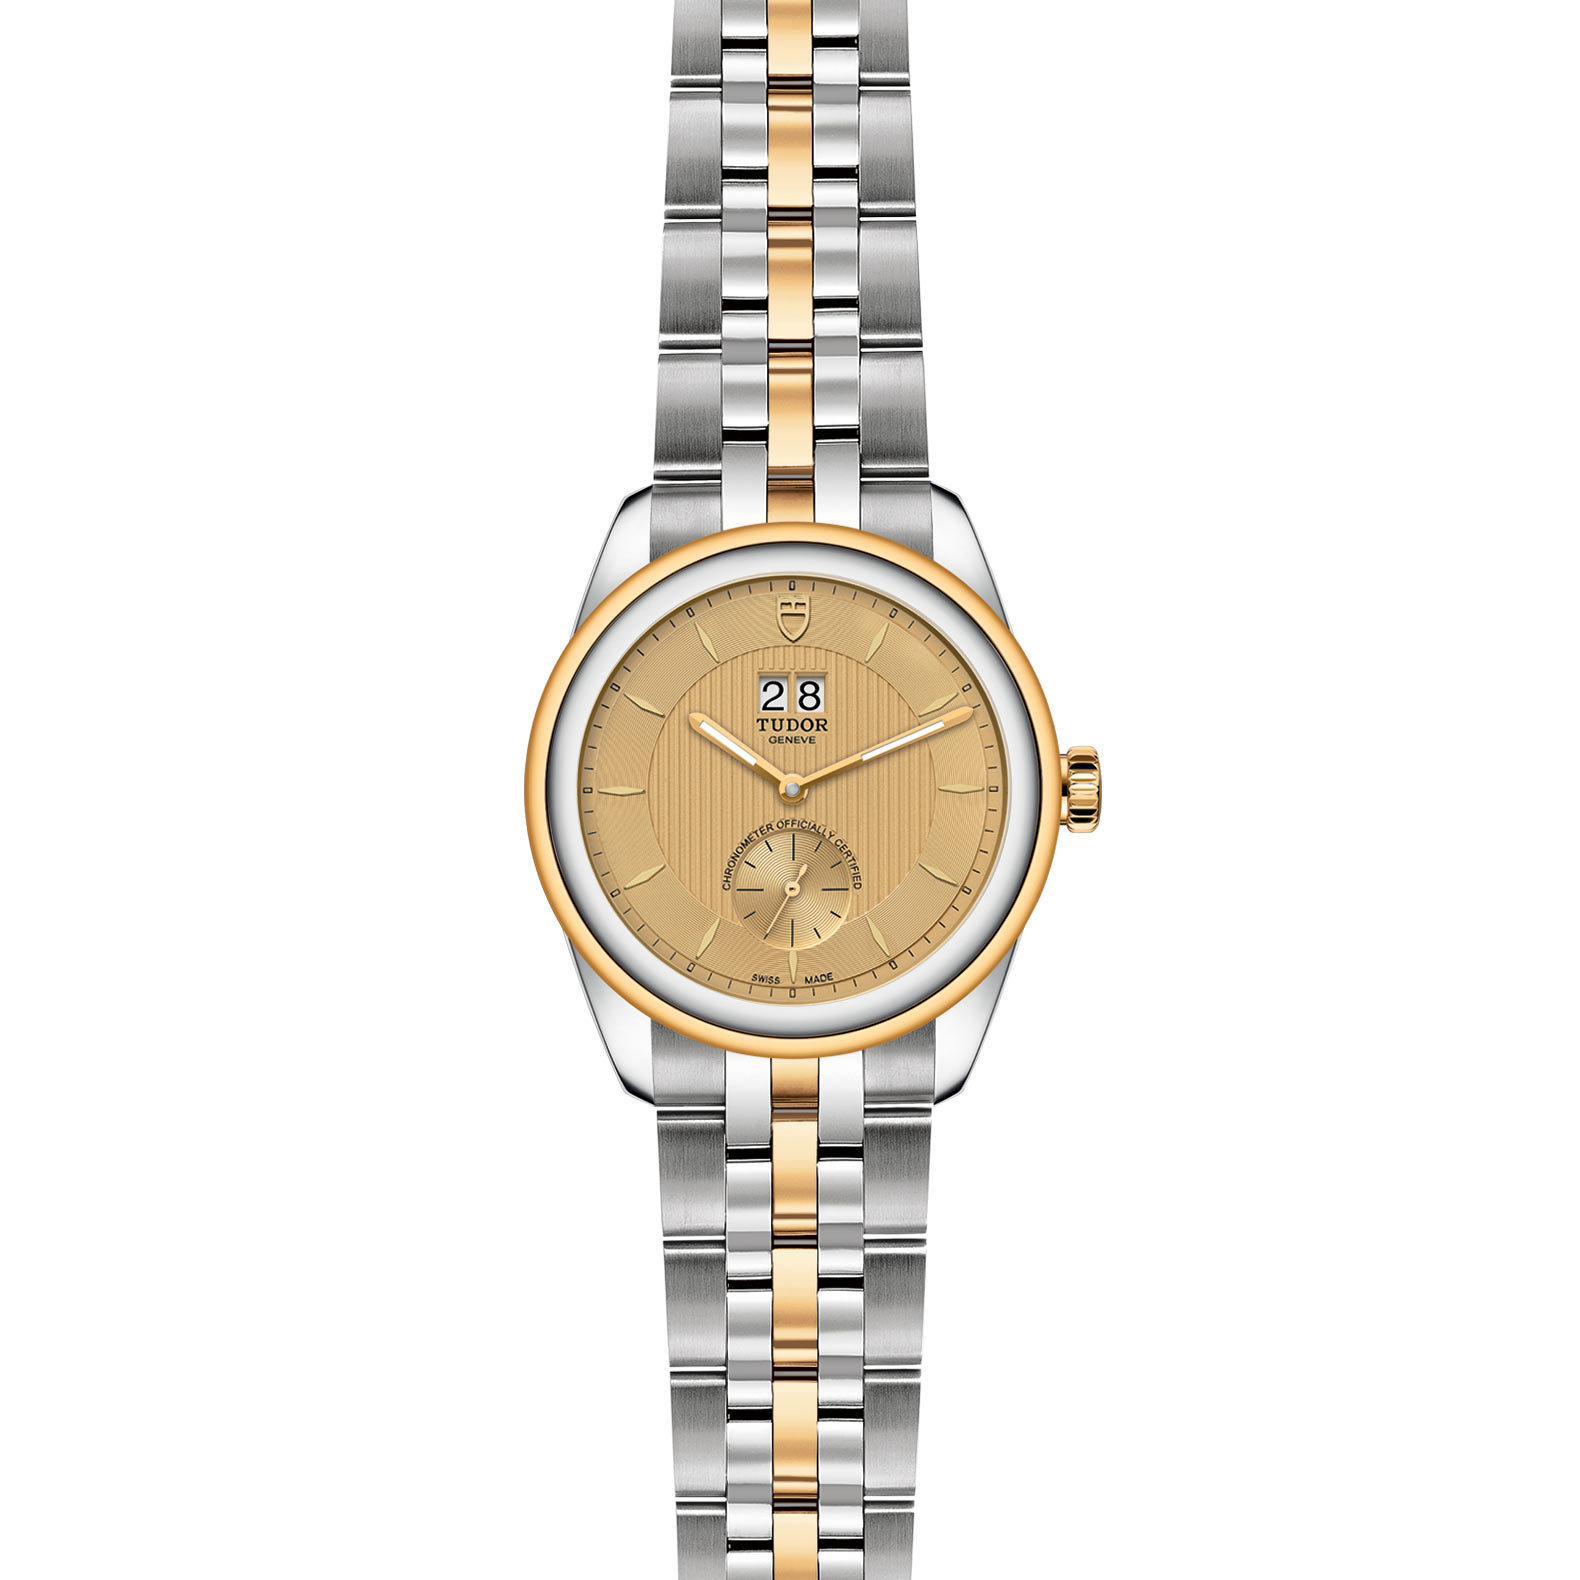 TUDOR Glamour Double Date M57103 0003 Frontfacing